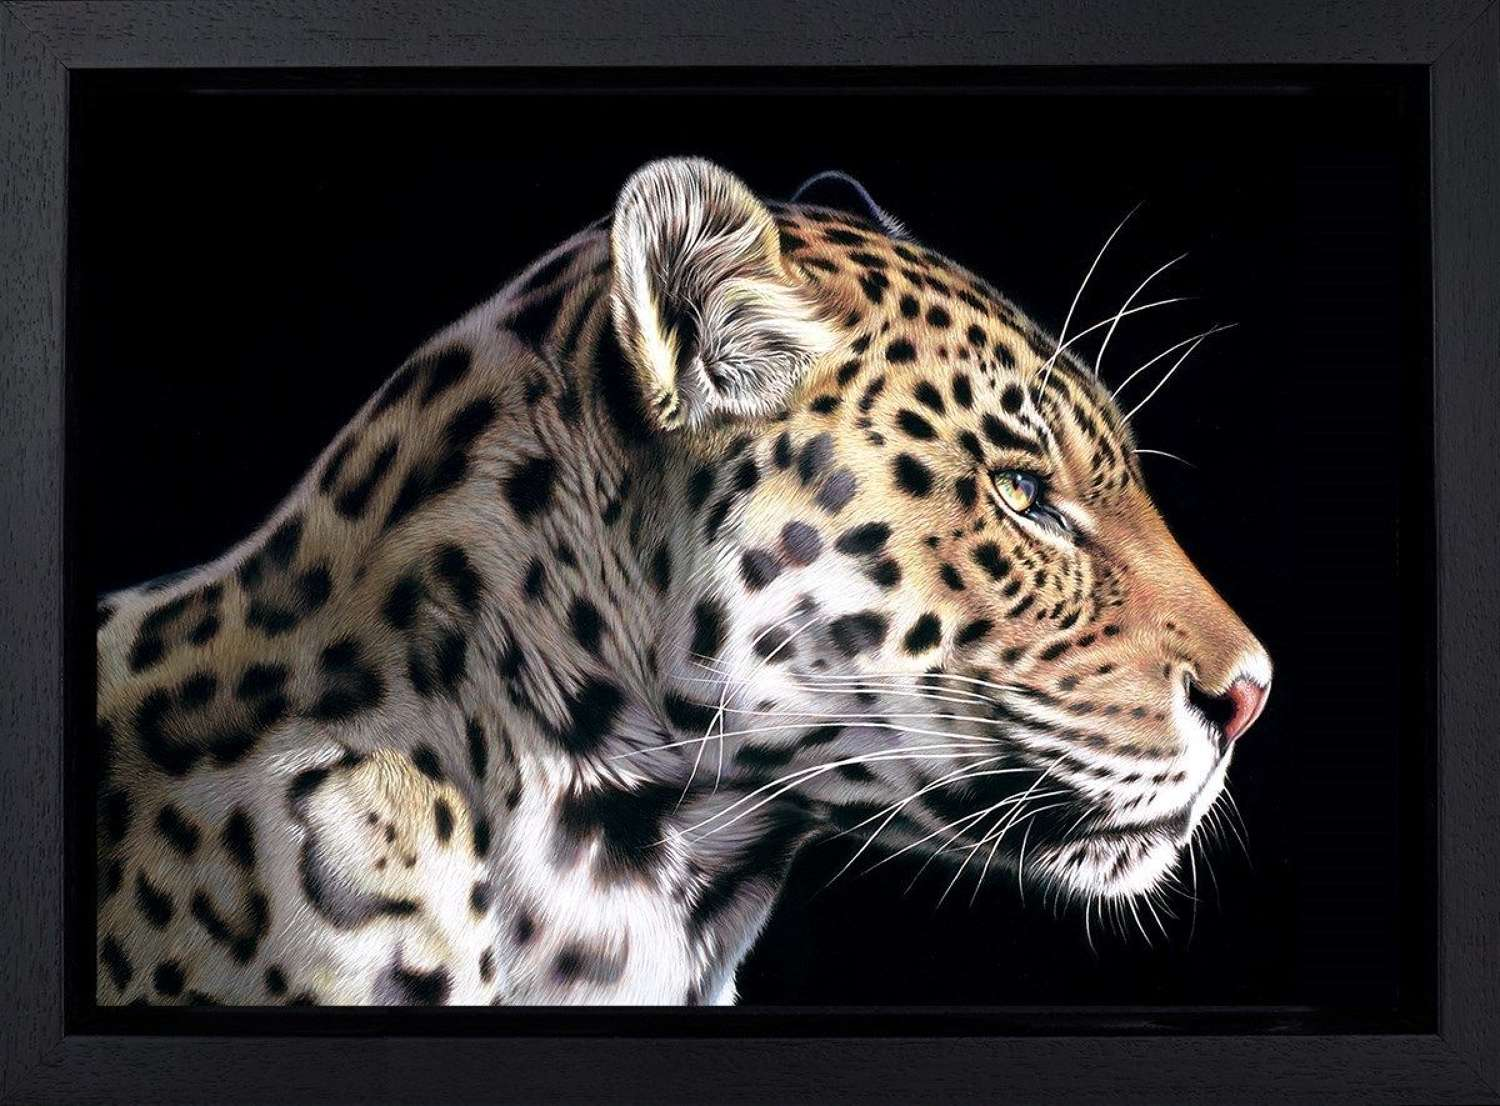 The Wild Side I - Framed Canvas Art Print by Darryn Eggleton